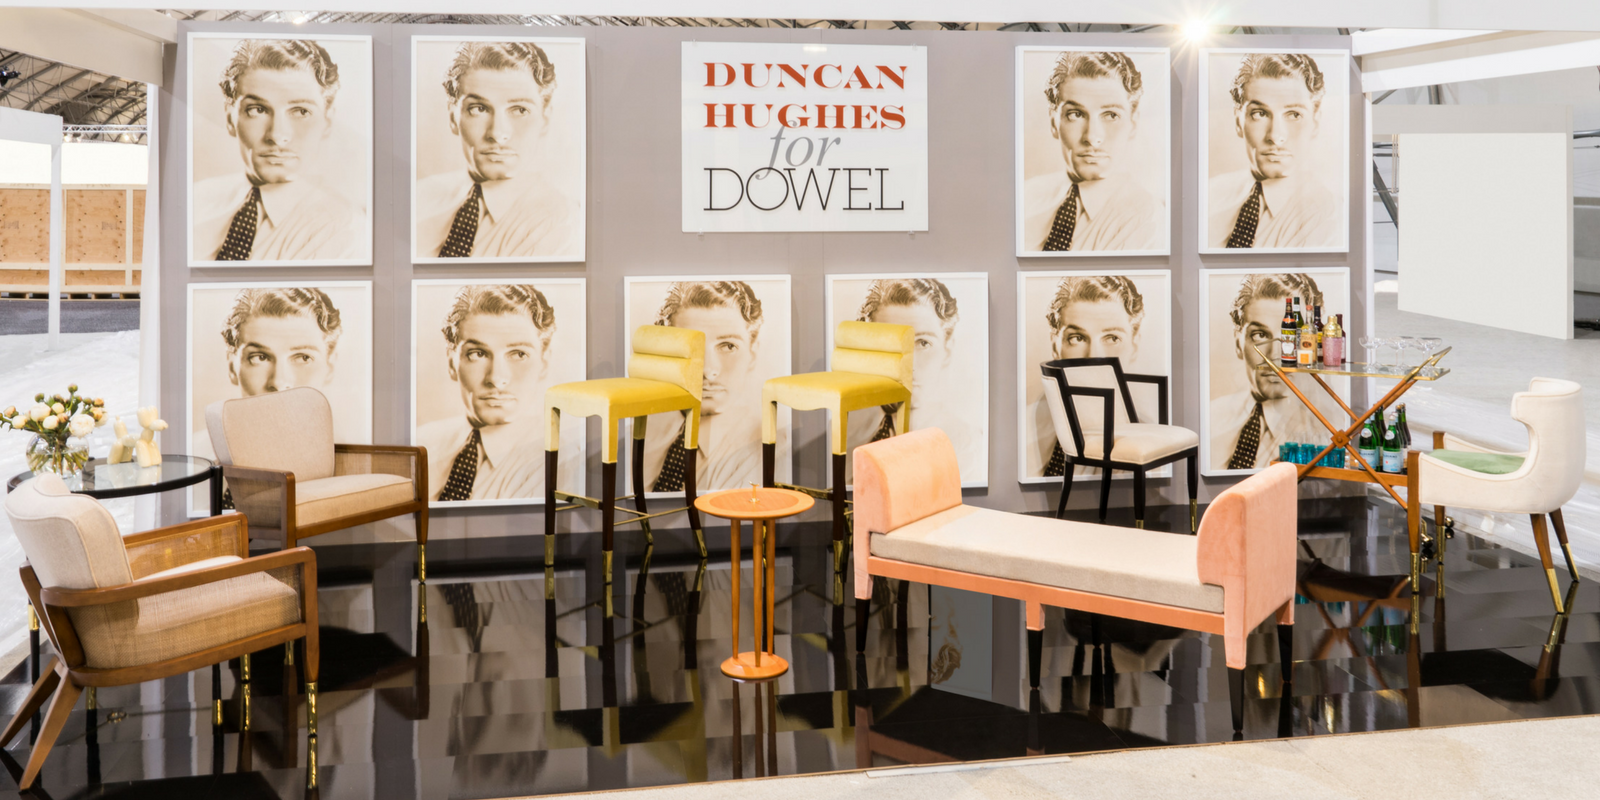 Duncan Hughes for Dowel Collection Boston Lau